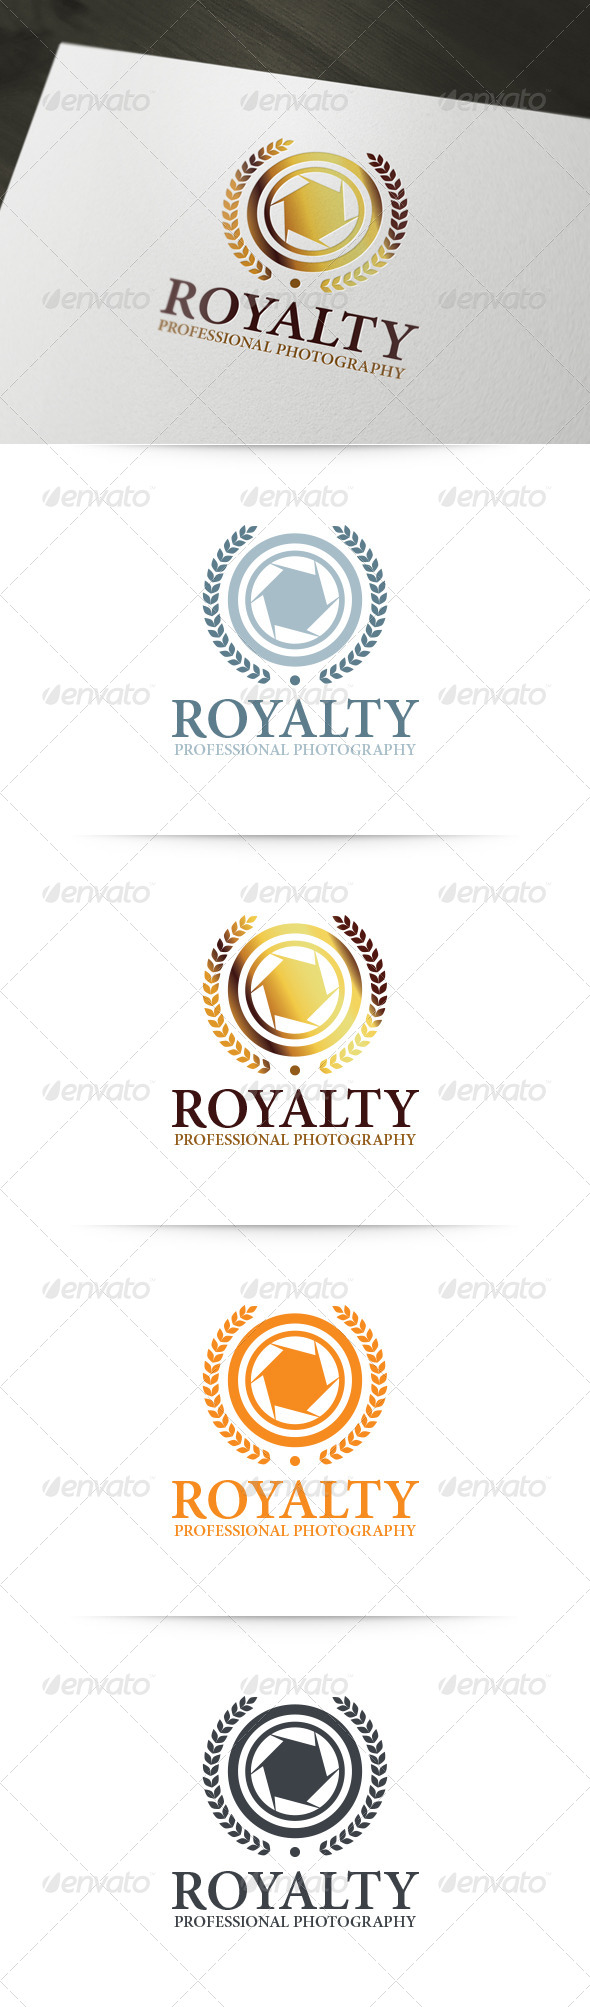 Royalty Photography Logo